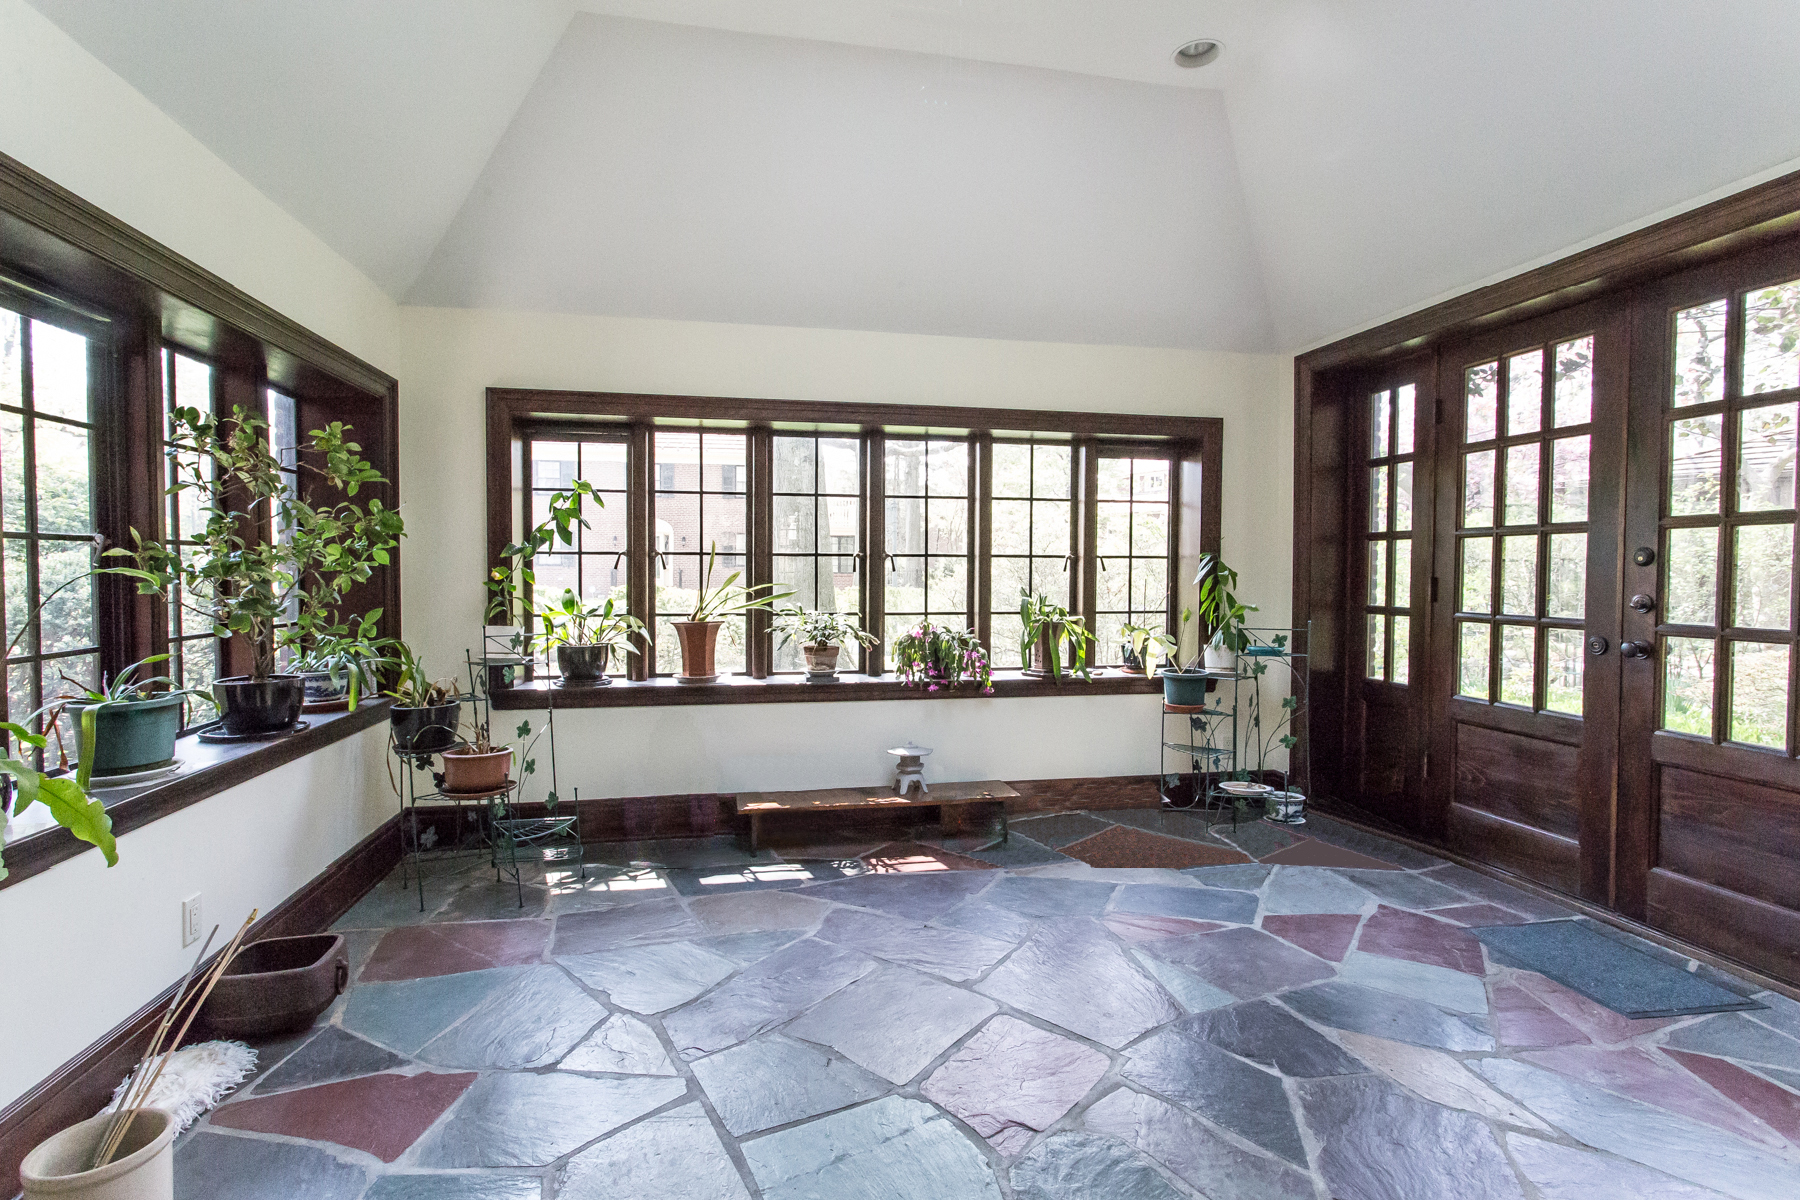 Additional photo for property listing at 60 DEEPDENE ROAD, FOREST HILLS GARDENS  Forest Hills, New York 11375 United States